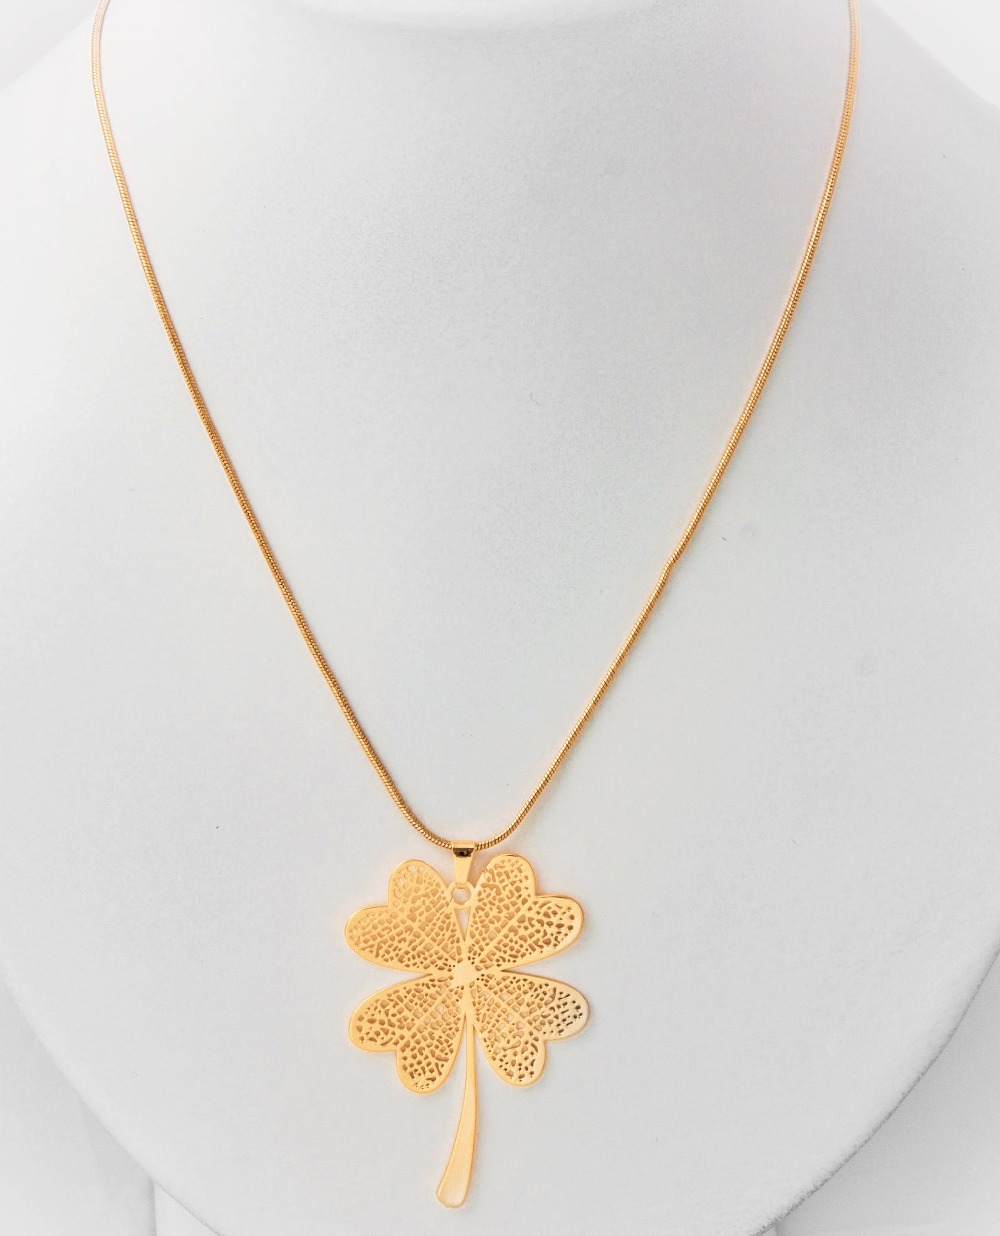 wholesale best quality luckly silver gold long gold neckless women fashion Four Leaf Clover pendant necklace(China (Mainland))